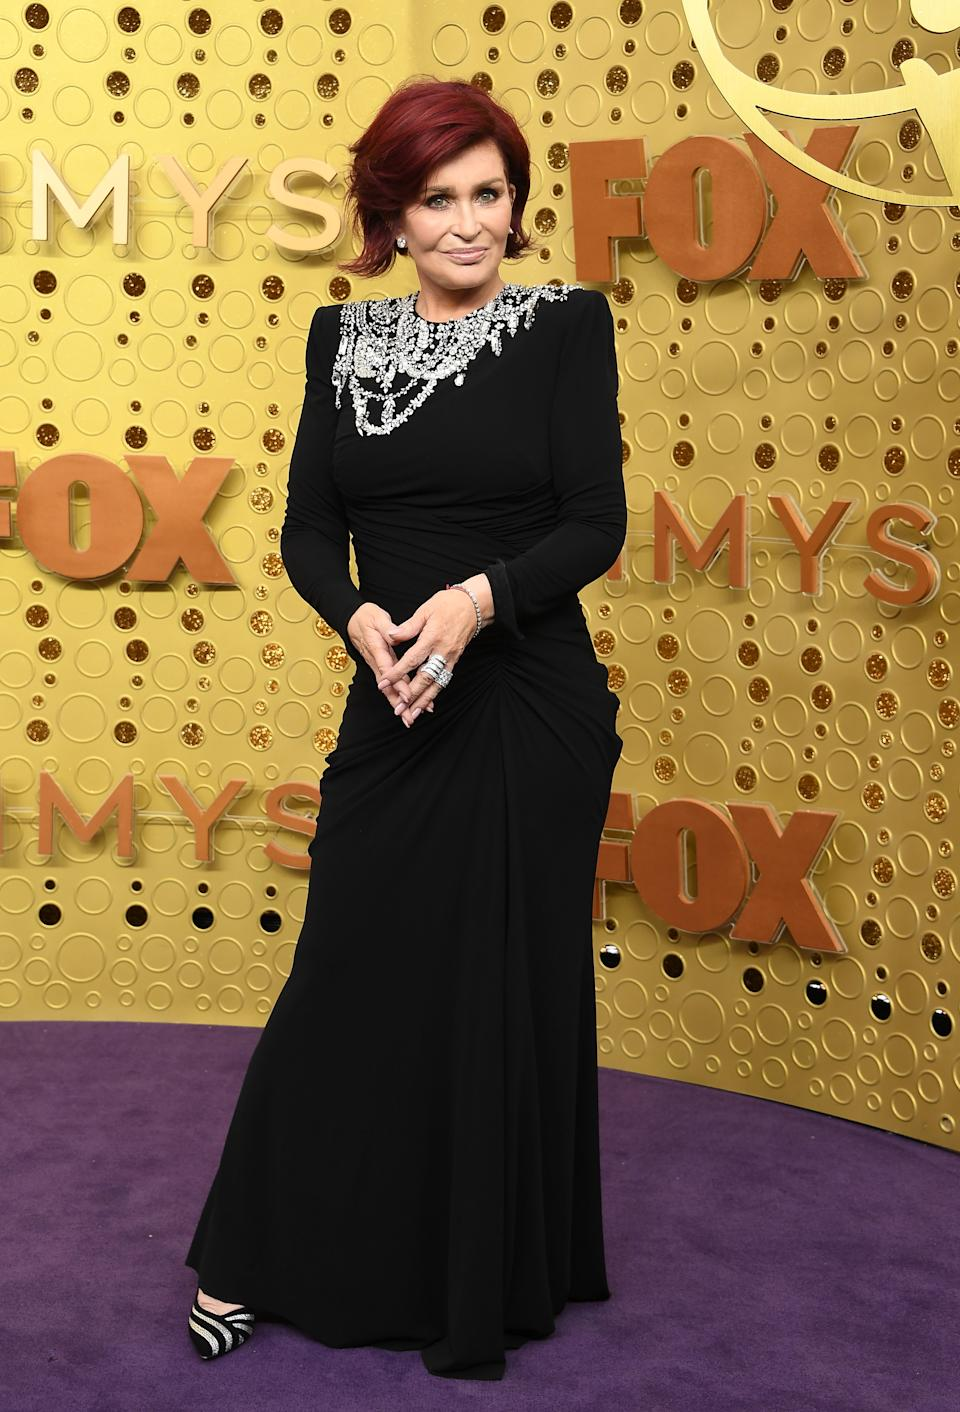 'The Talk' daytime host and infamous reality-TV mom looked elegant in an embellished black gown by Alexander McQueen. [Photo: Getty]